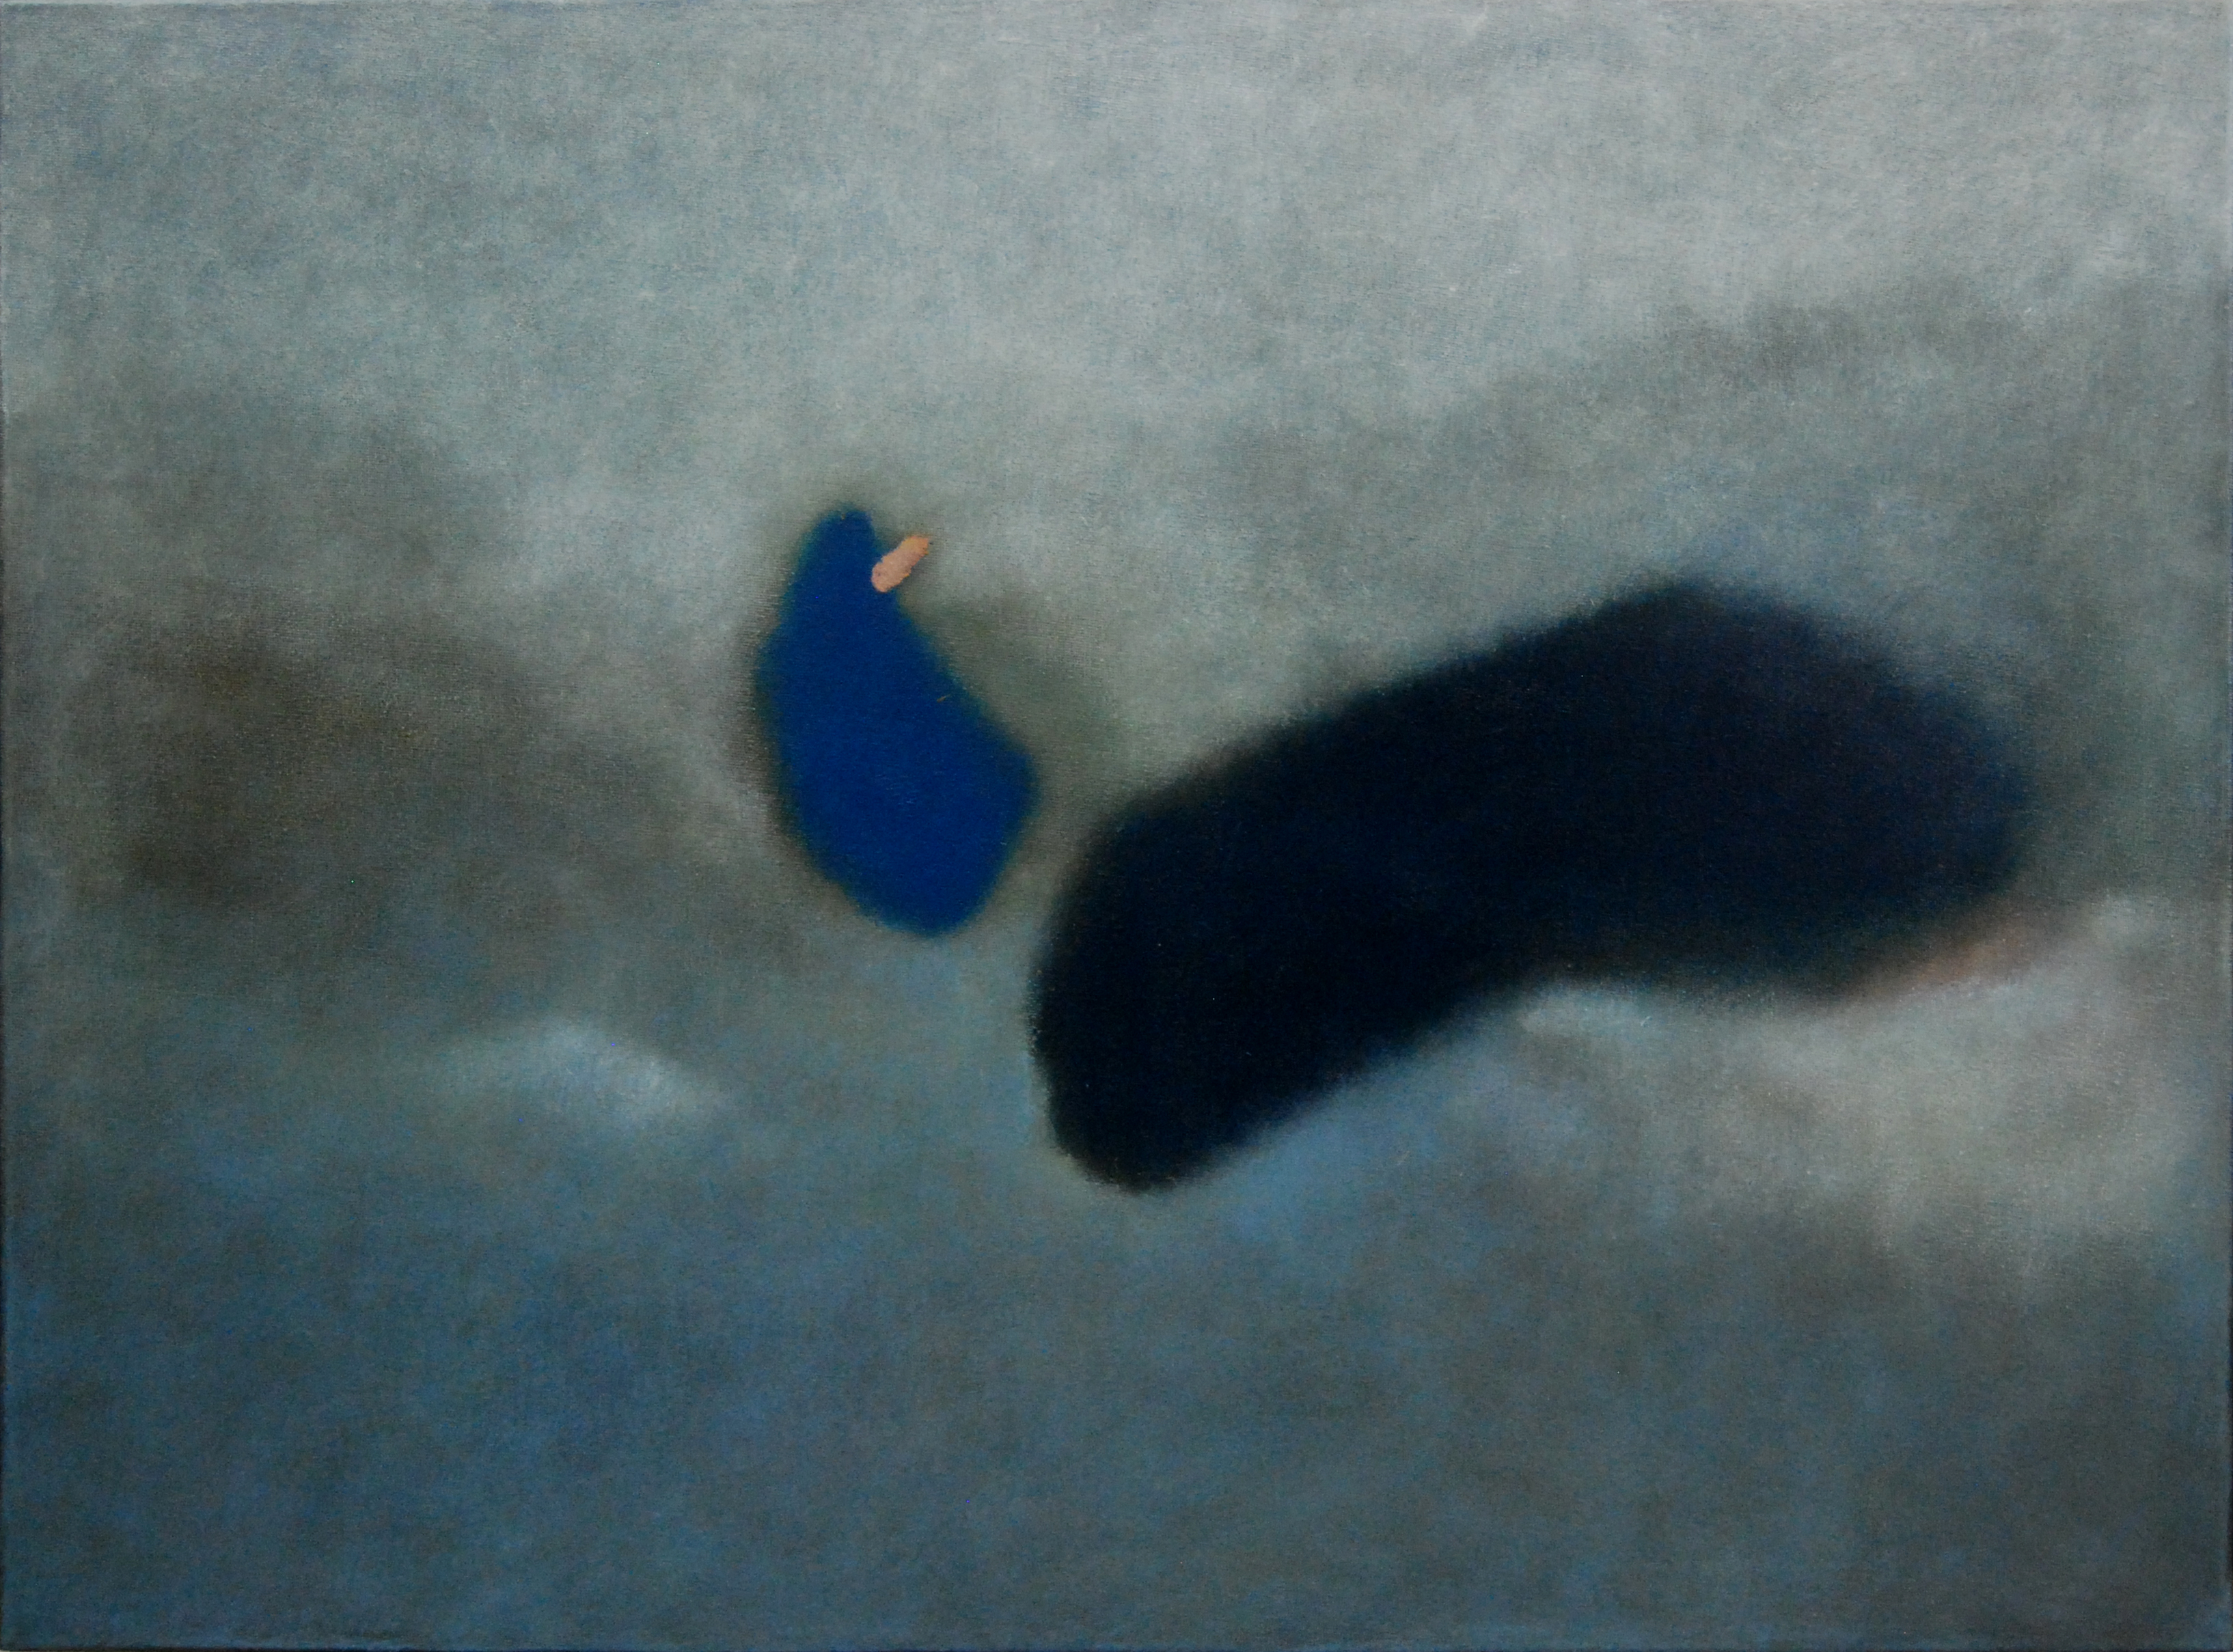 <em>You & me III</em>. 2010. Oil on canvas. 80x100cm